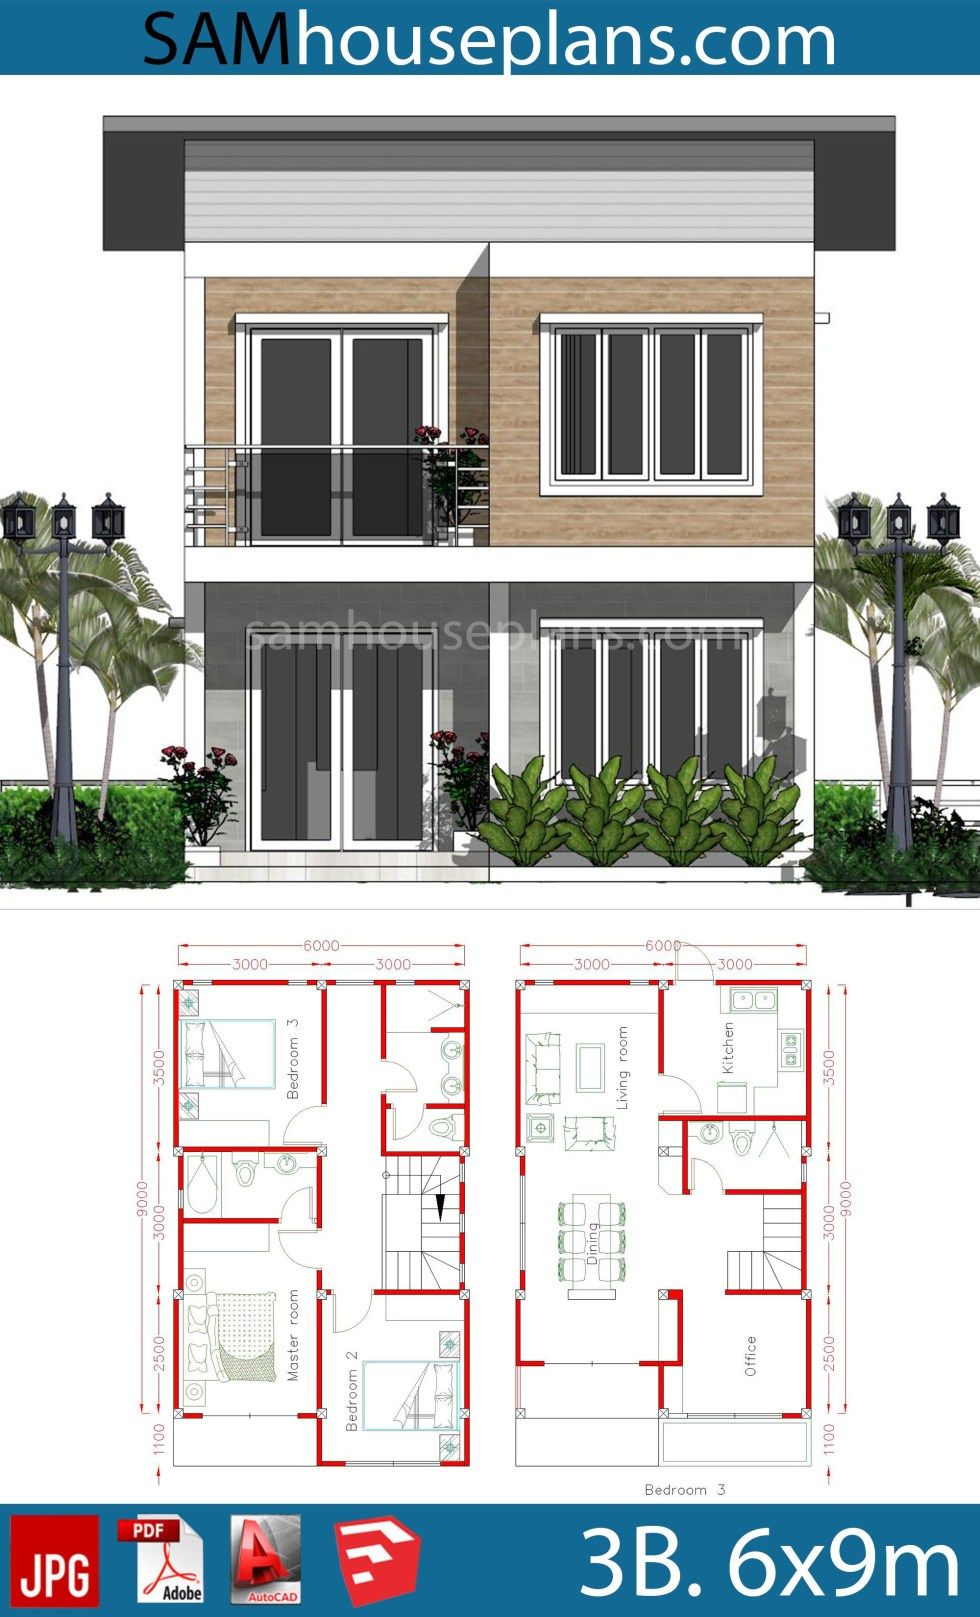 House Plans 6x9m With 3 Bedrooms Sam House Plans House Construction Plan House Arch Design Model House Plan